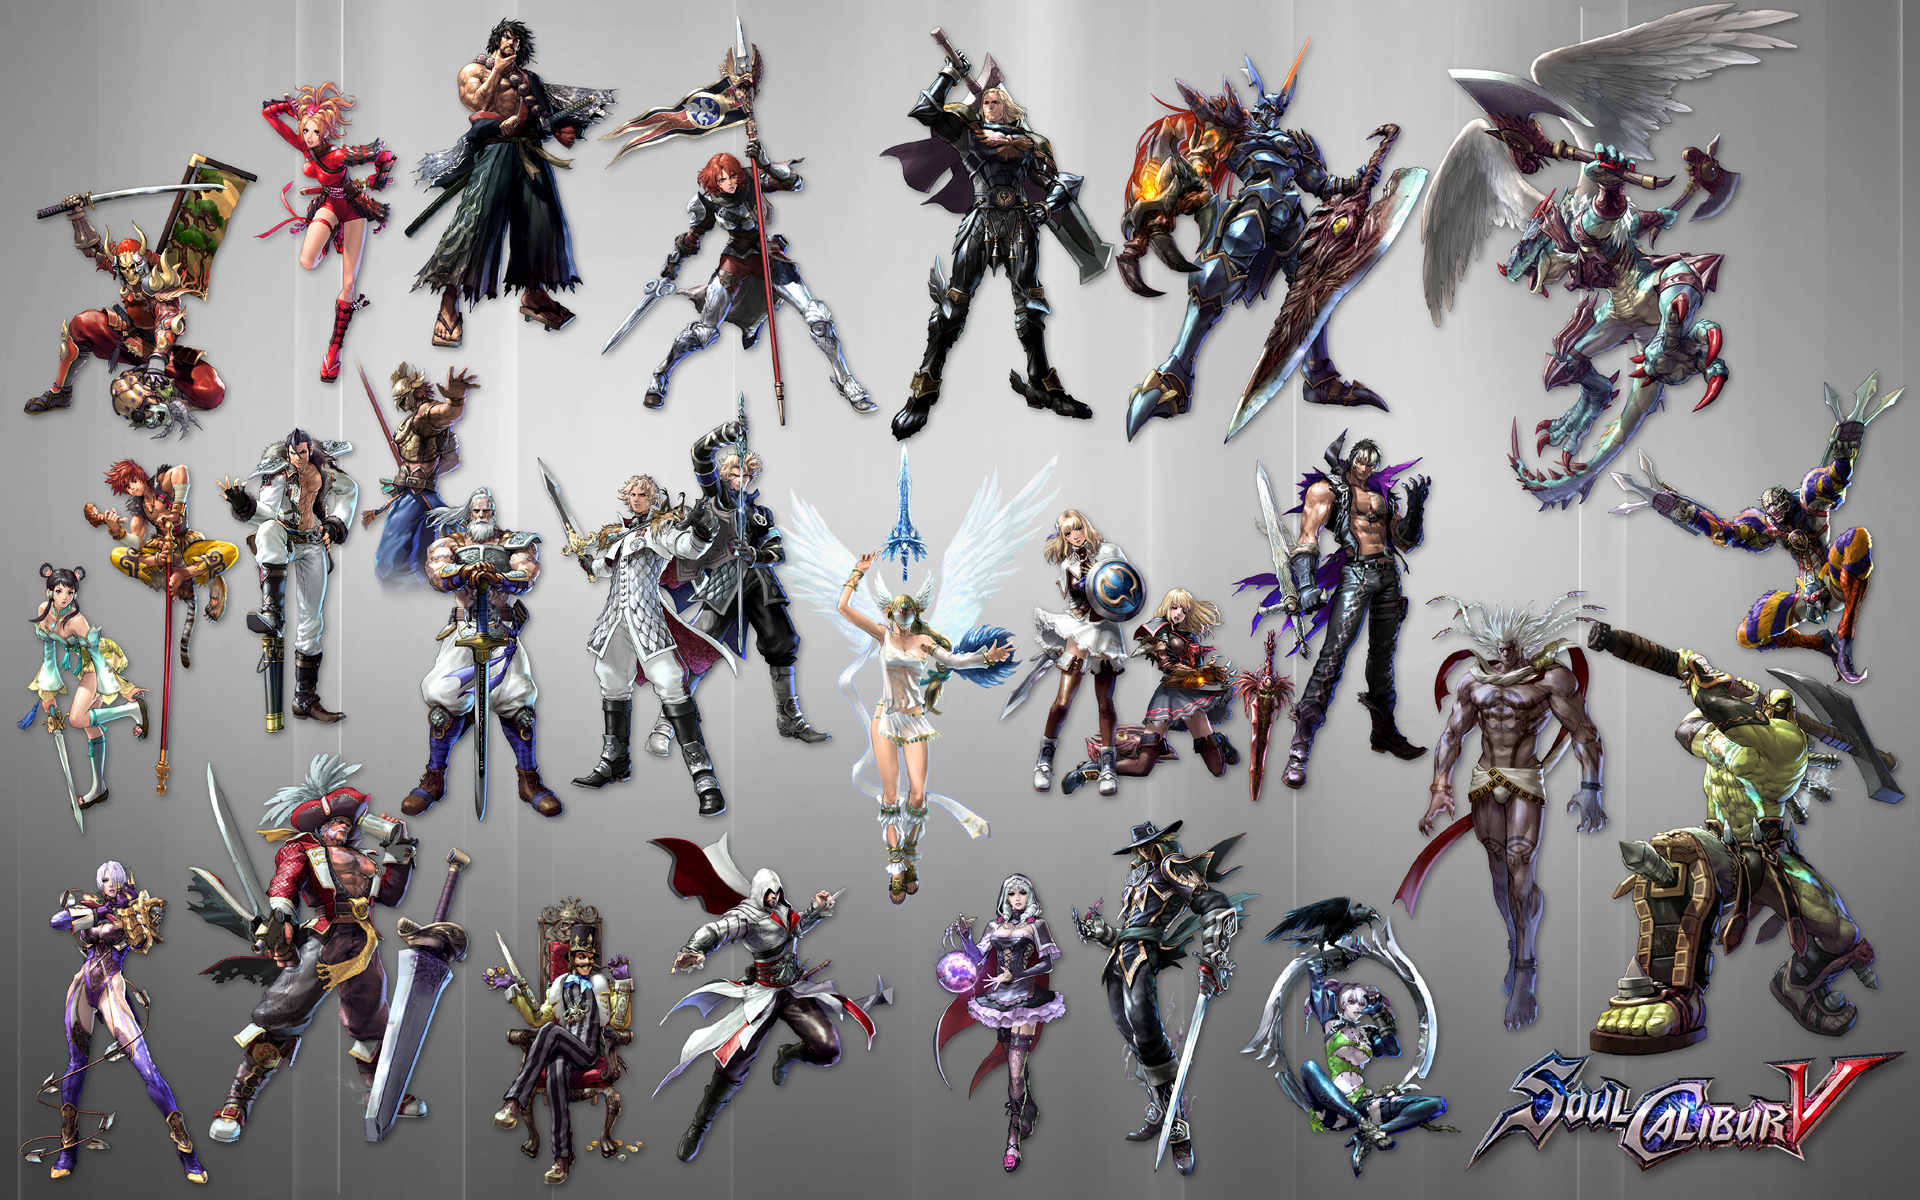 1 920   215  1 200 pixels  file size  1 13 MB  MIME type  image jpegSoul Calibur 1 Characters